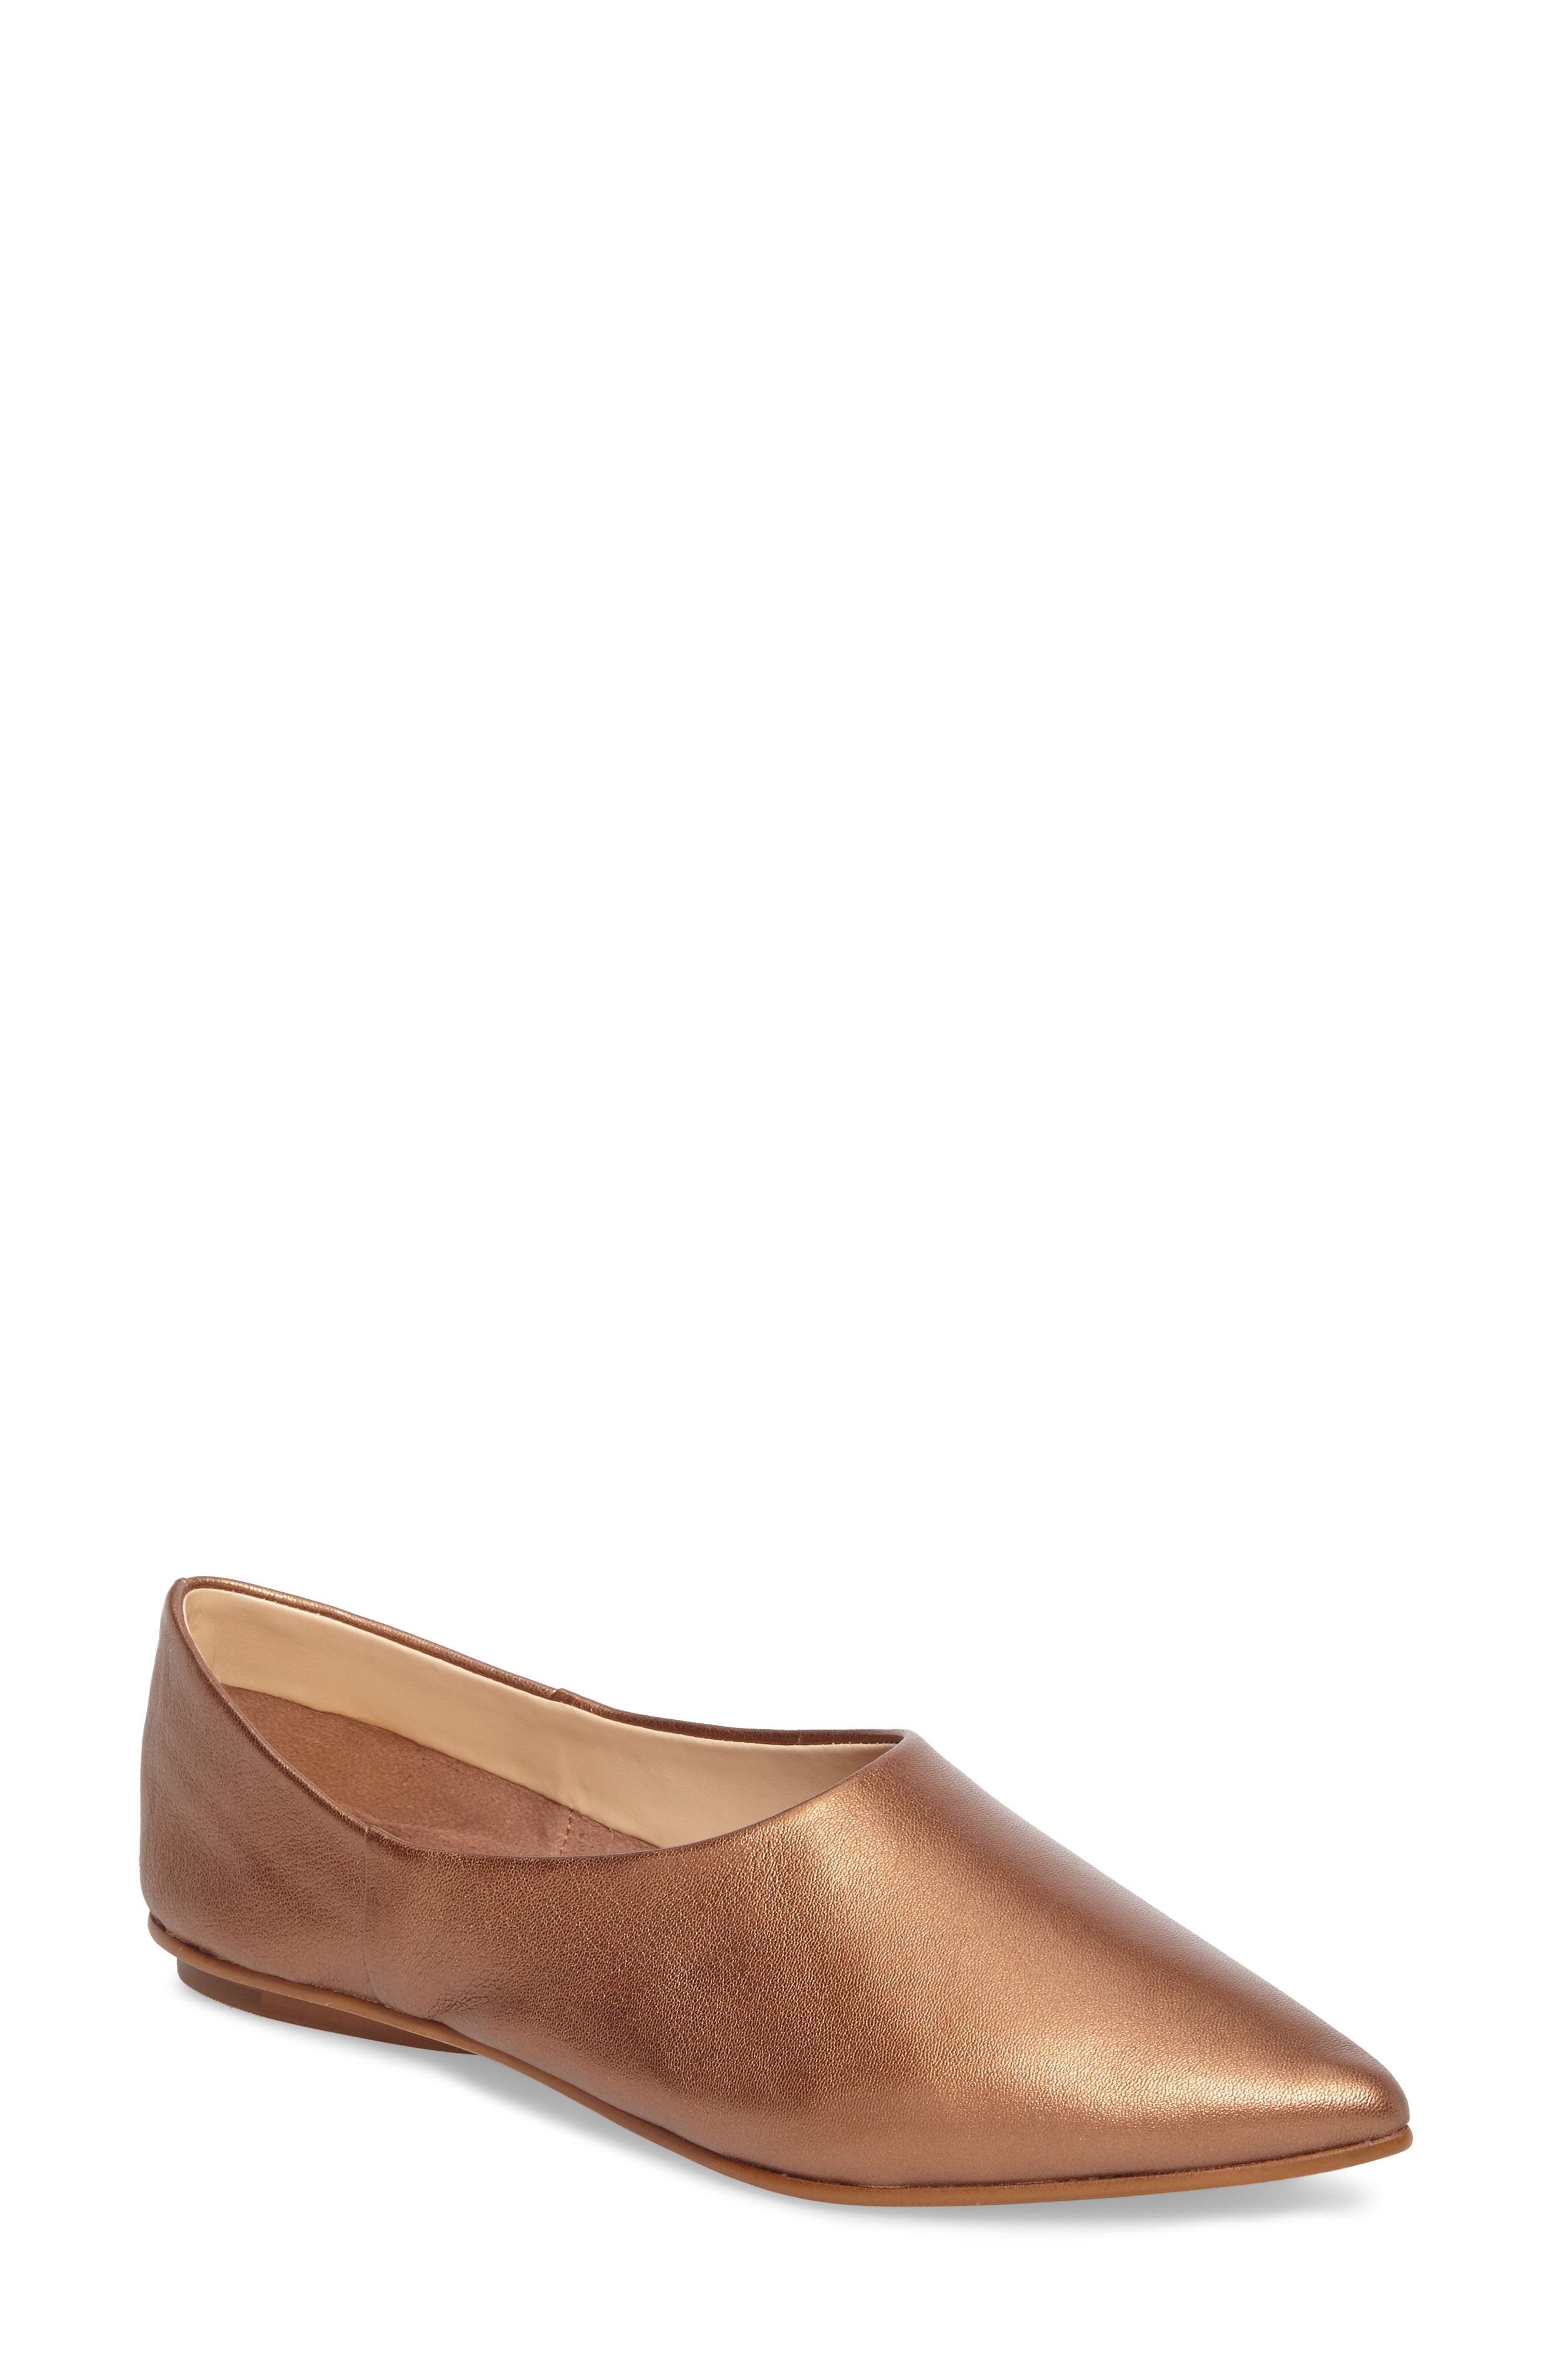 Stanta Pointy Toe Flat,                         Main,                         color, Penny Leather